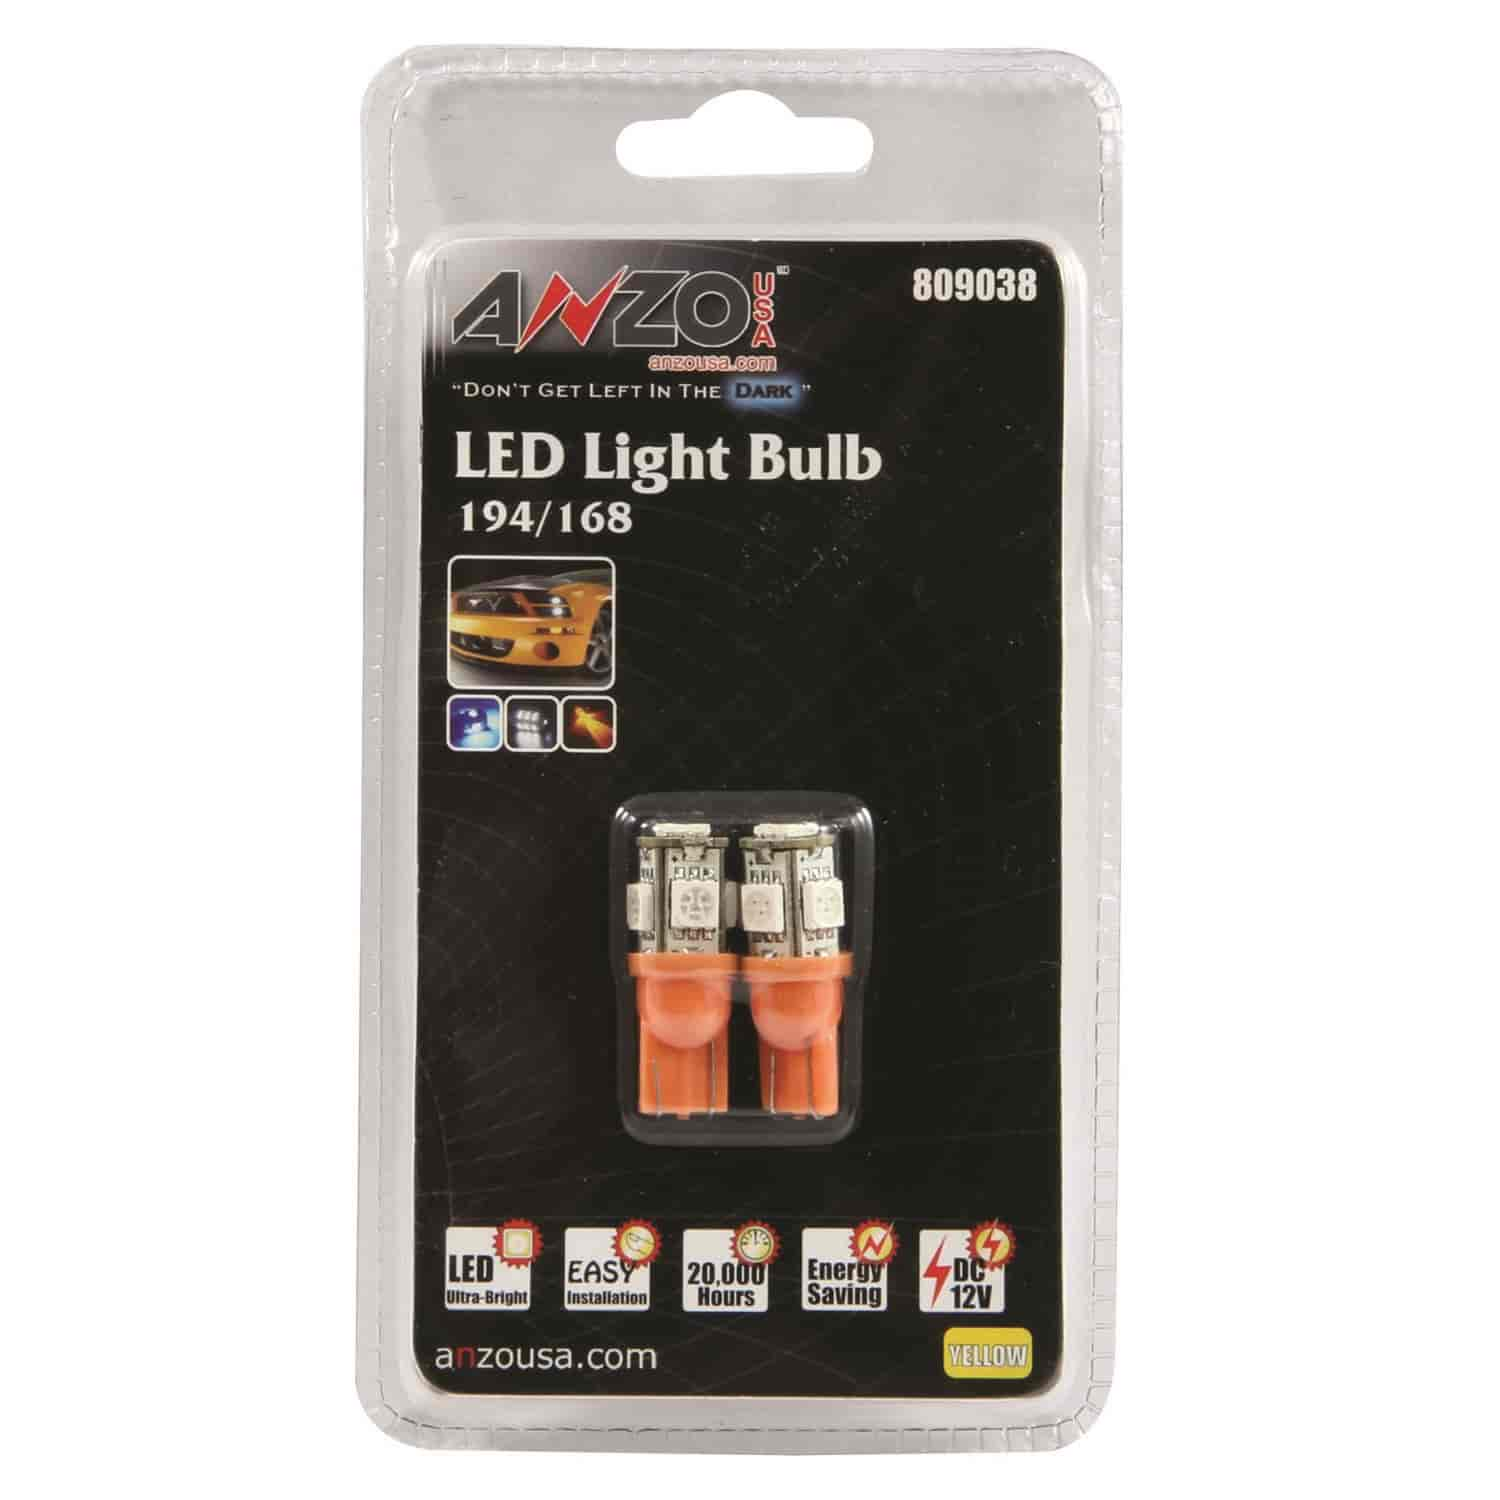 Anzo 809038 - Anzo LED Universal Light Bulbs